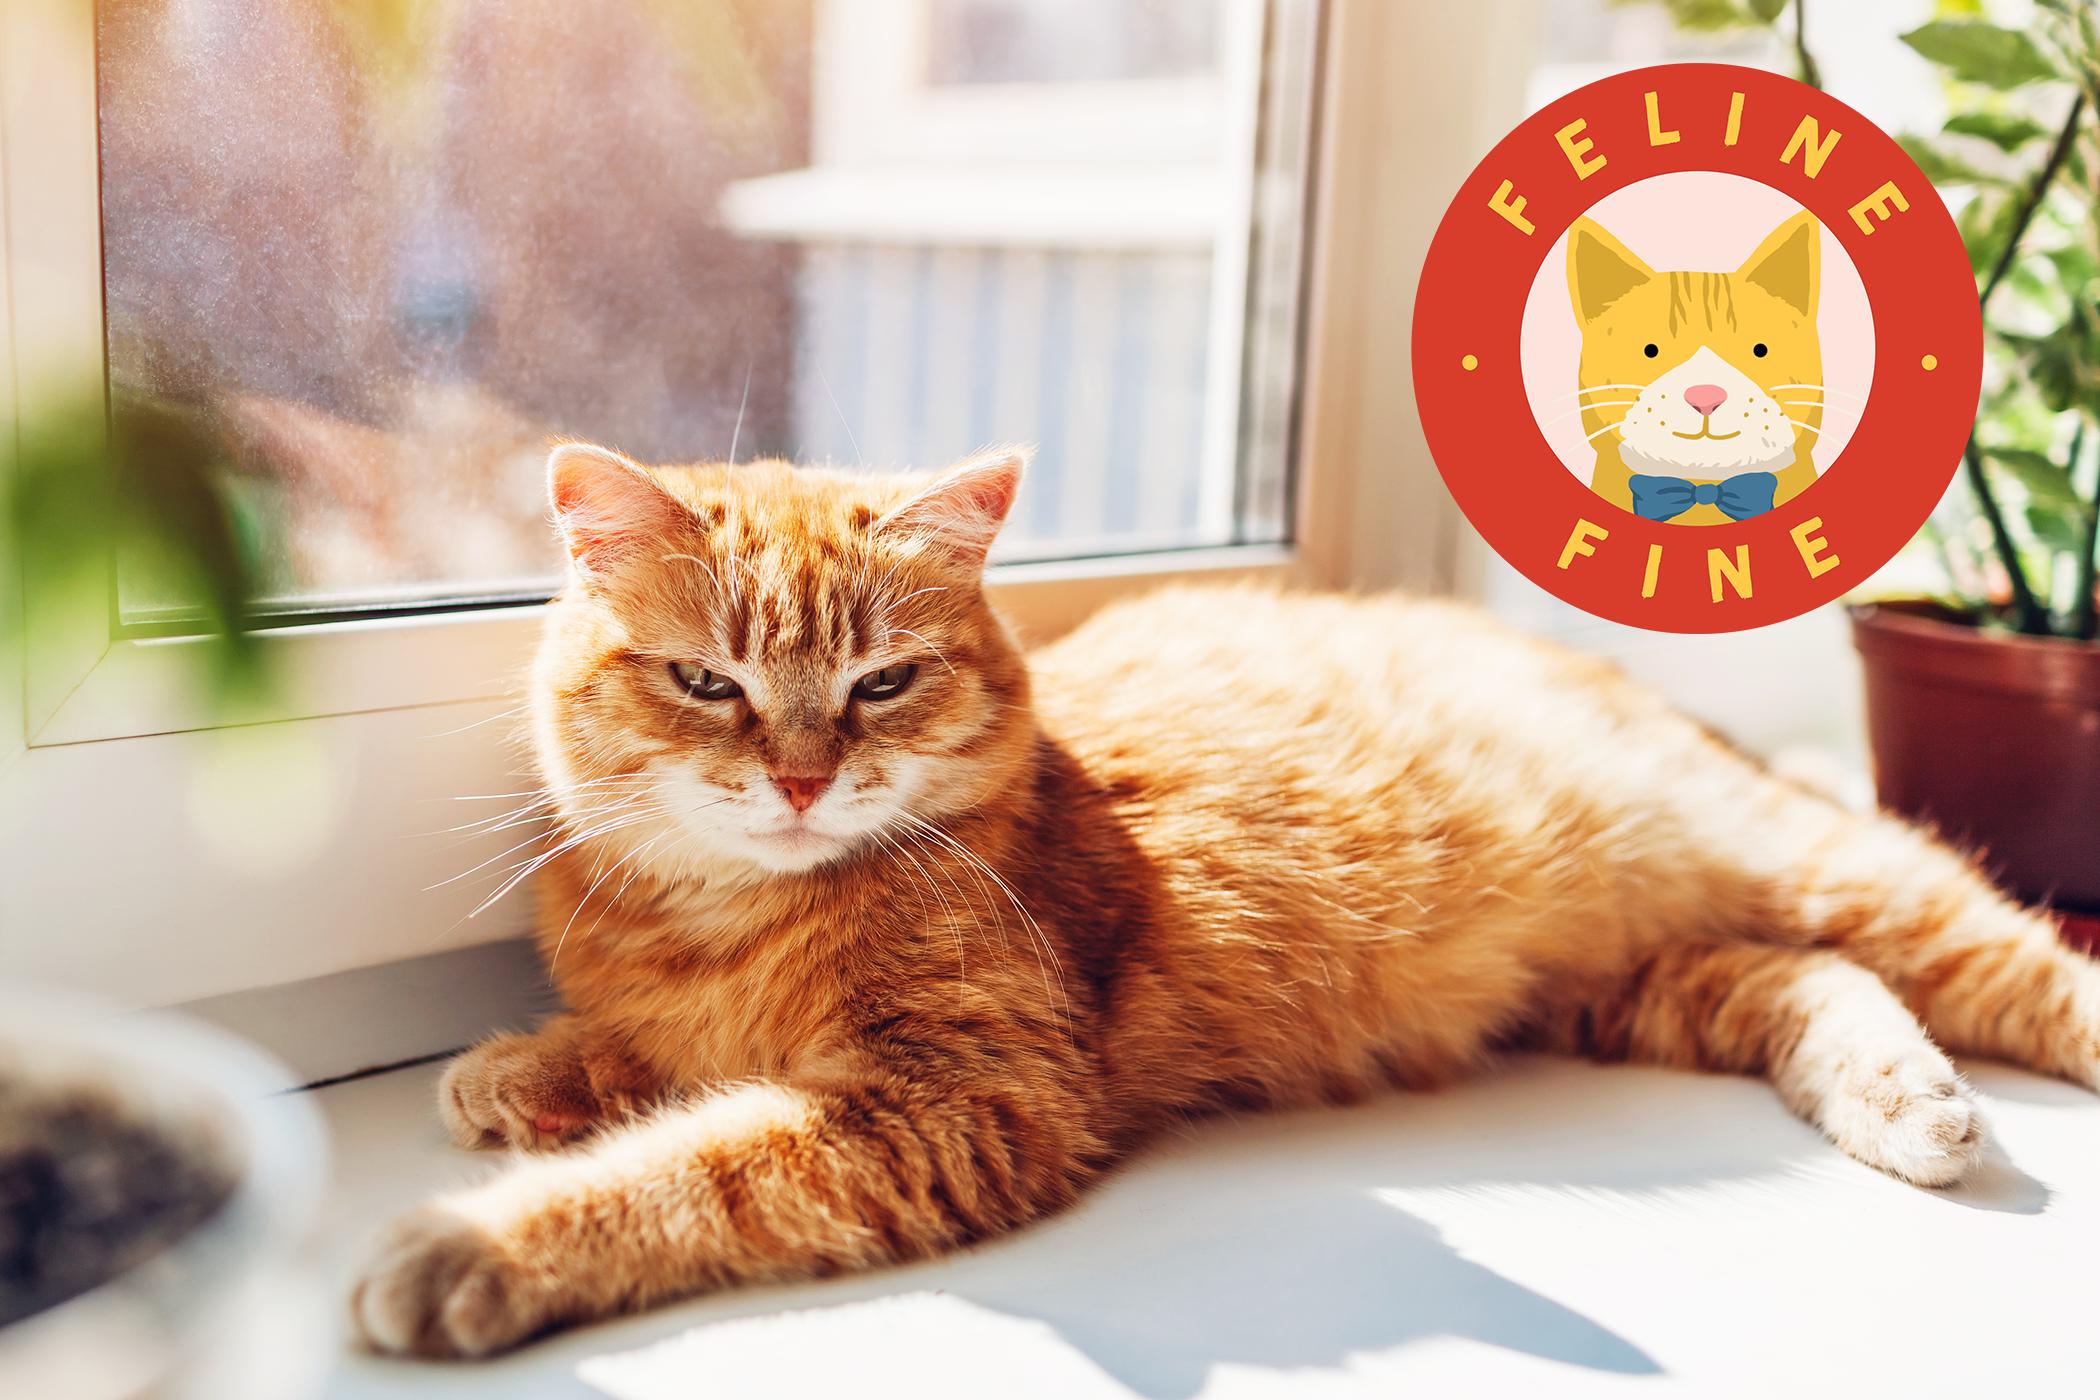 Ginger cat lying on window sill at home in the sun with feline fine graphic